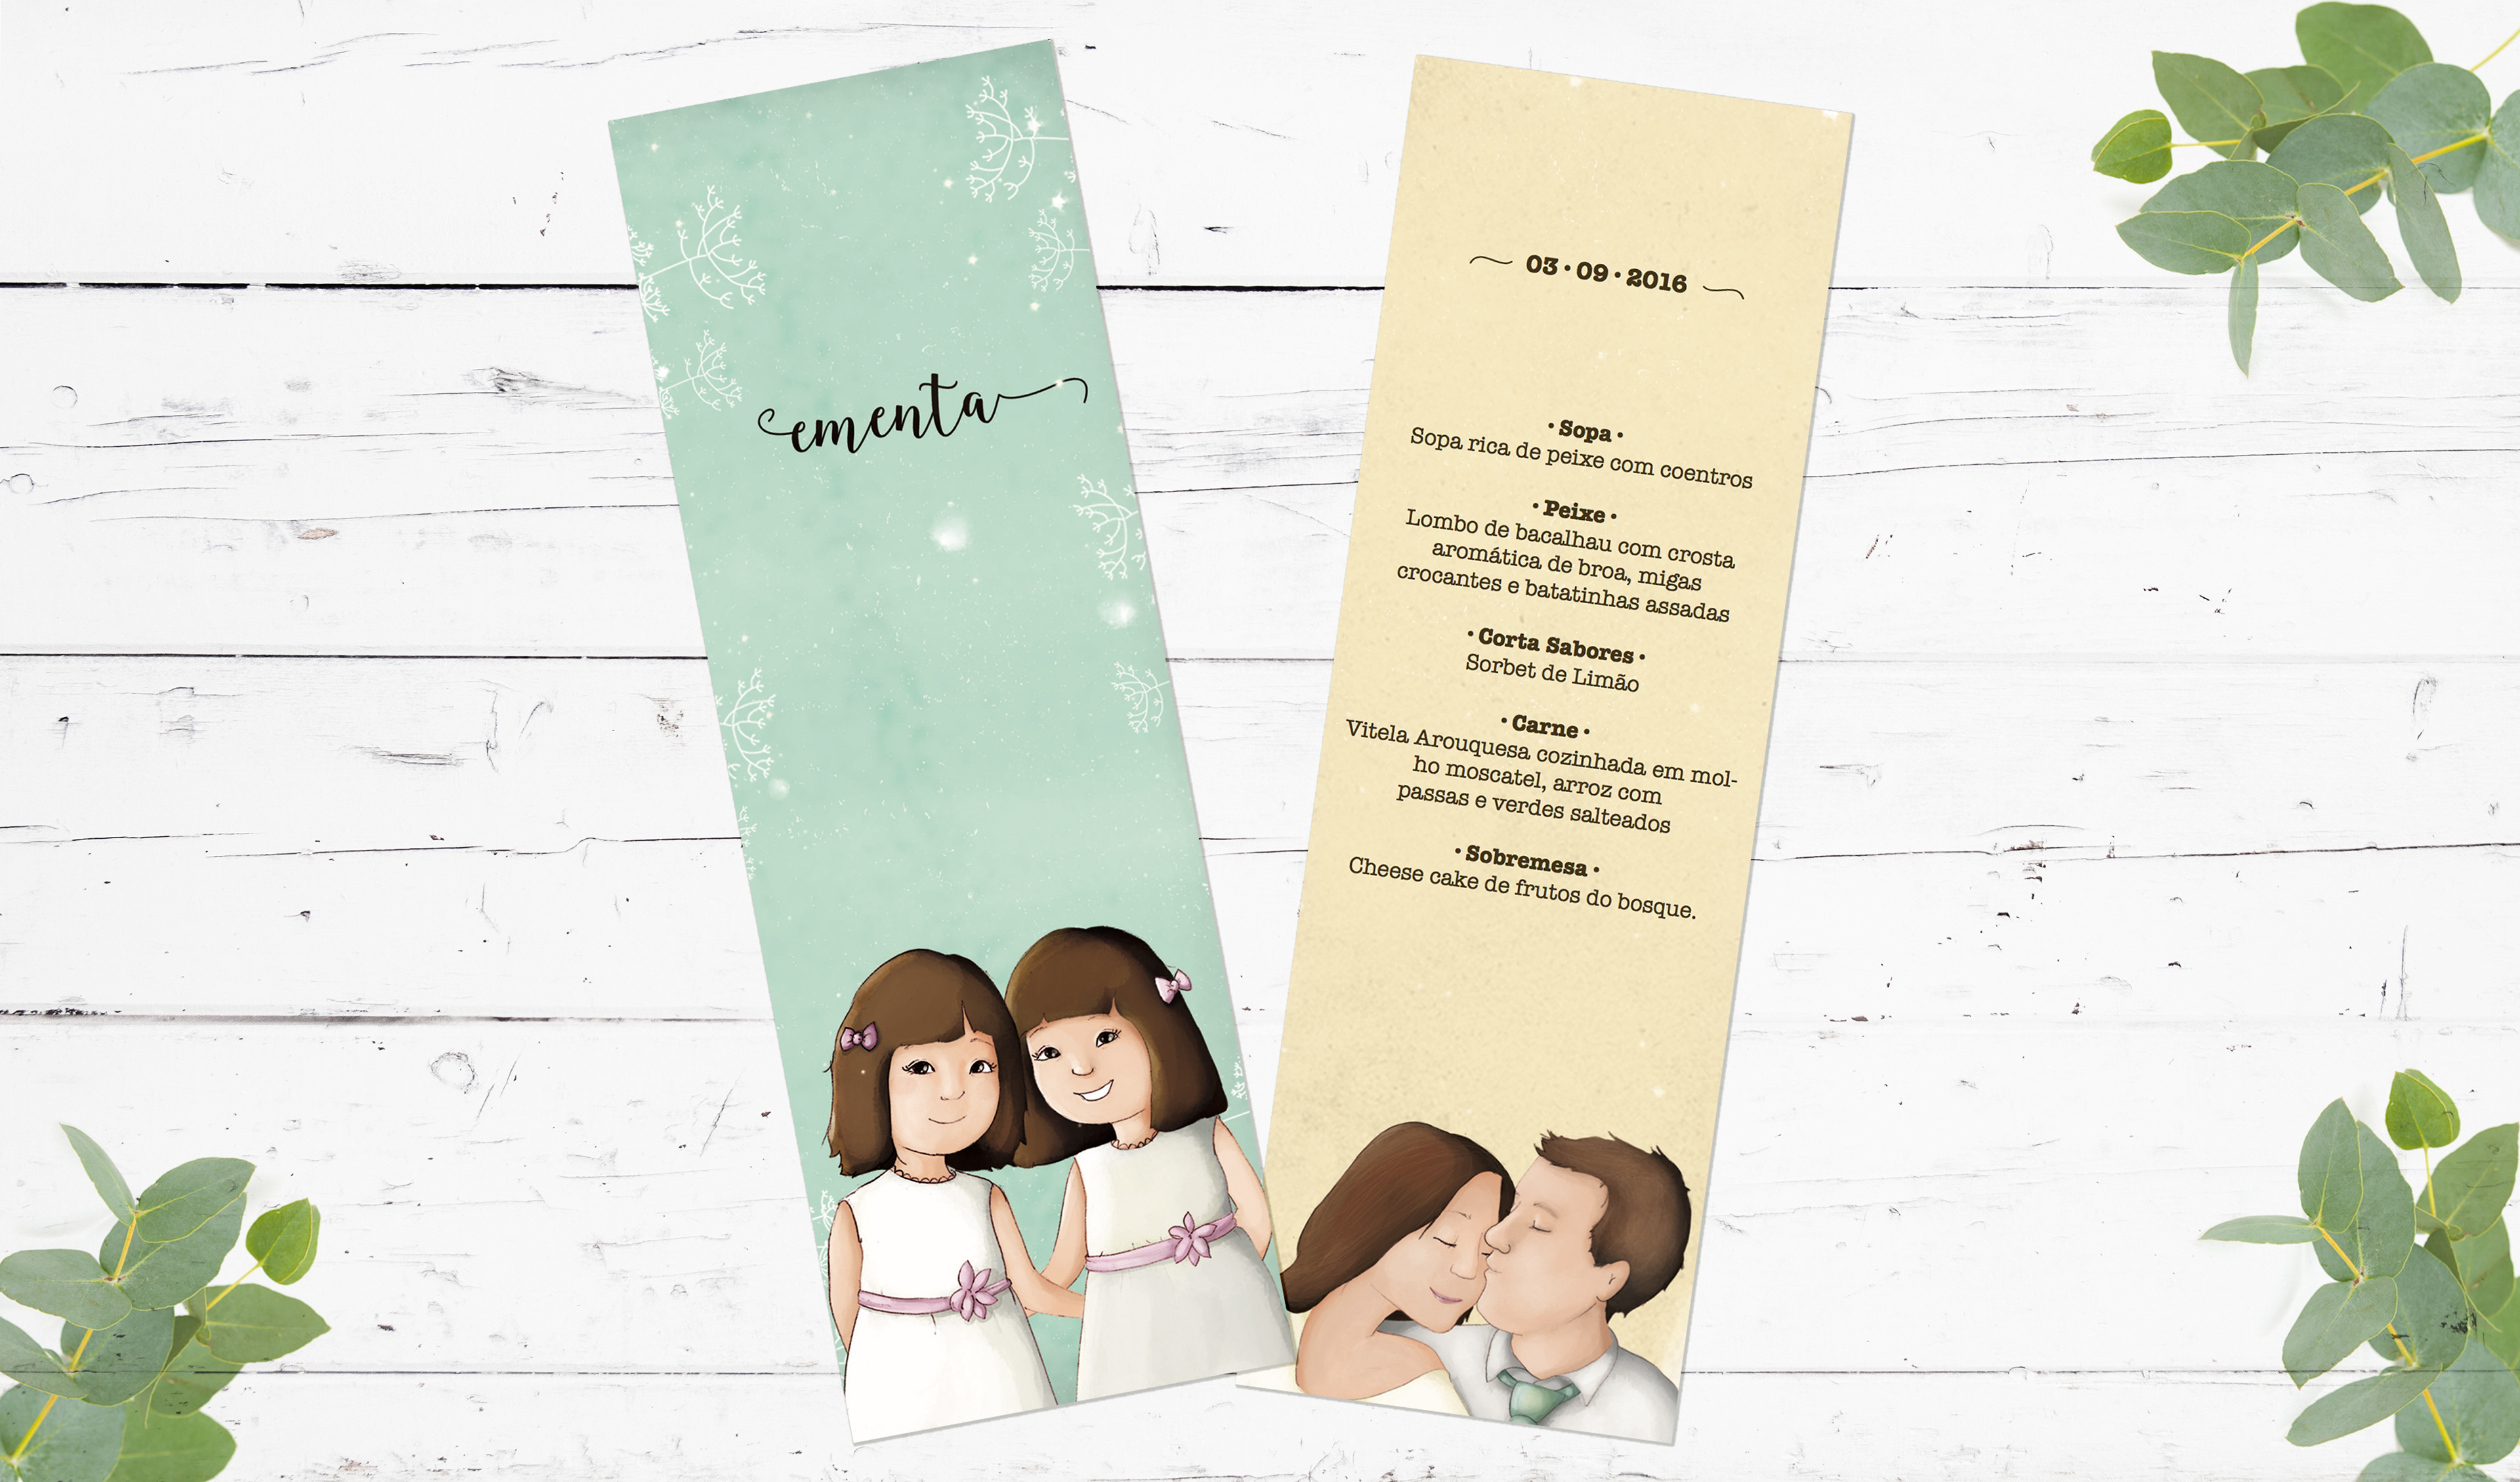 Asas de Peixe - Wedding & baptism invitation | Paula & Hervé & twiins